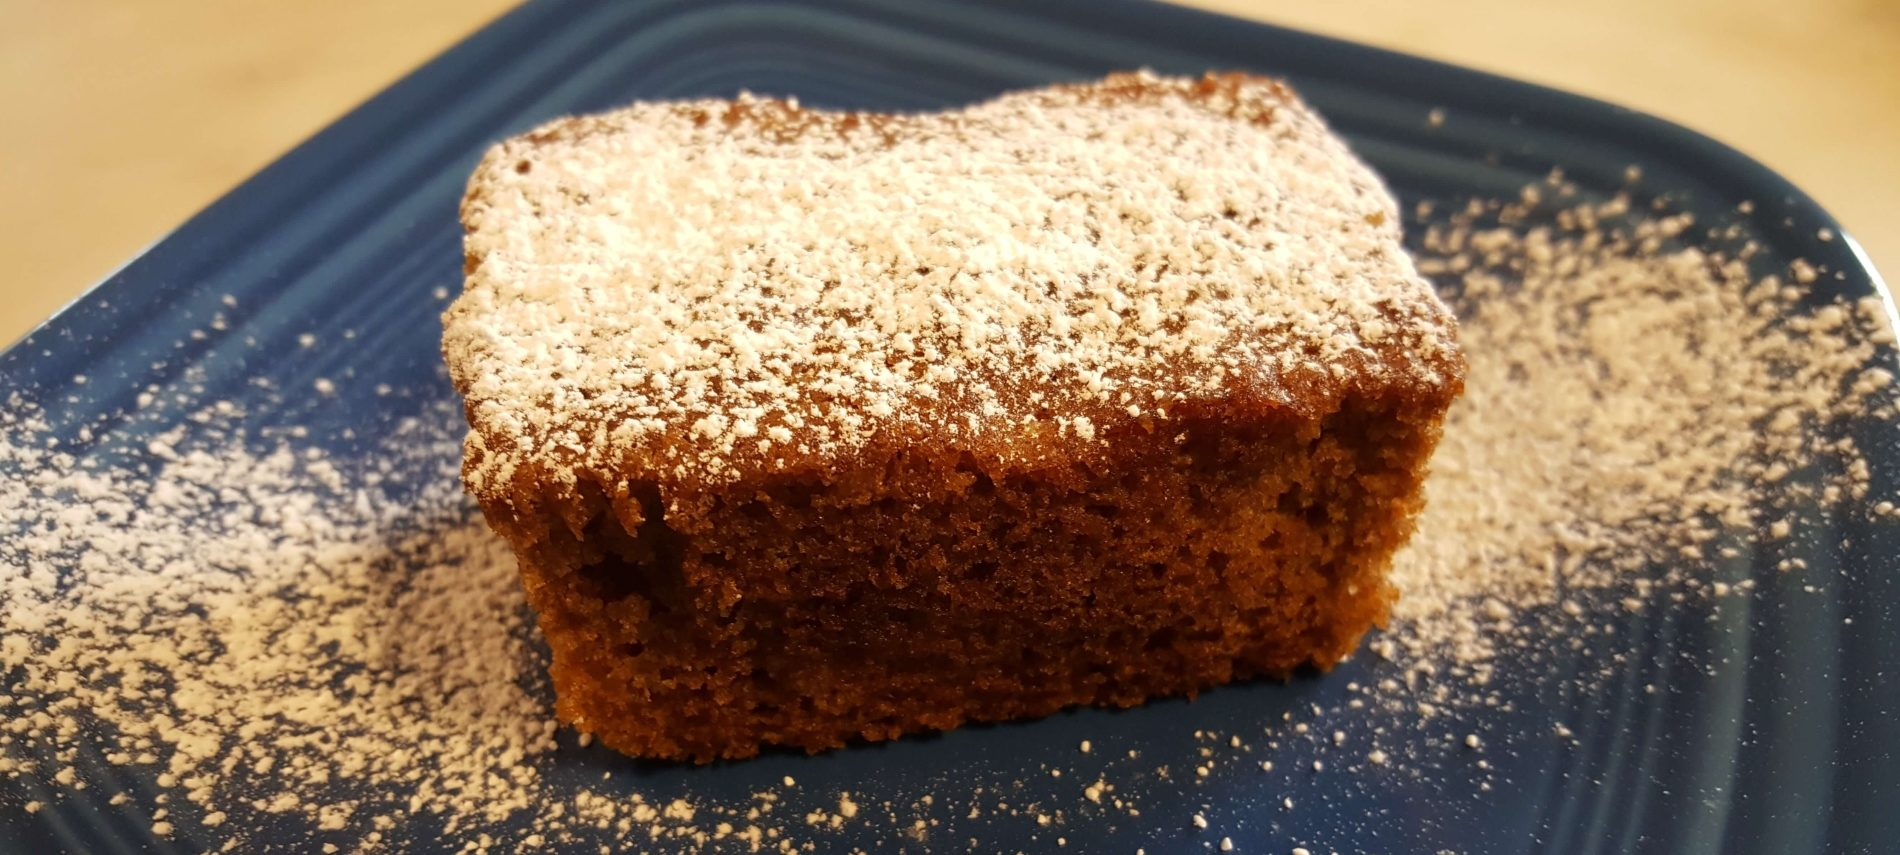 mini loaf shape brown cake sprinkled with powdered sugar on blue plate